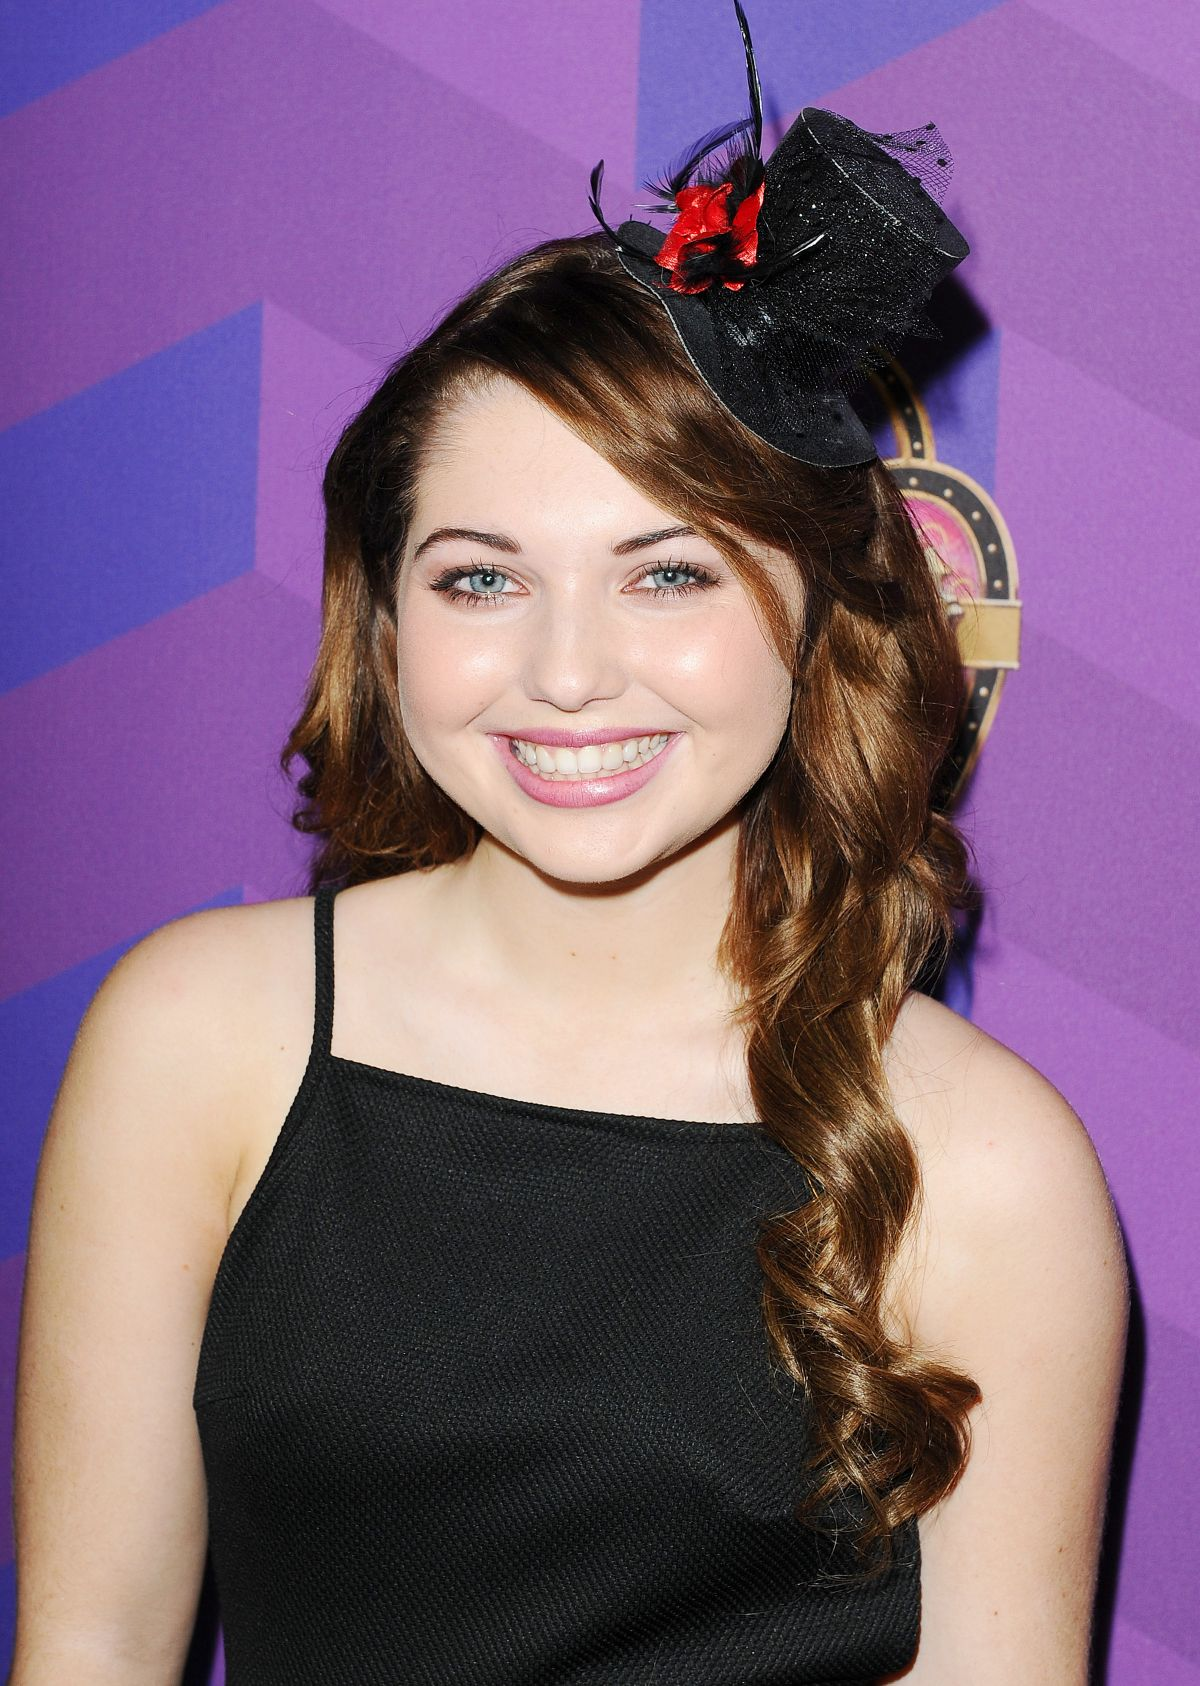 Sammi Hanratty nudes (43 photo) Young, Twitter, butt